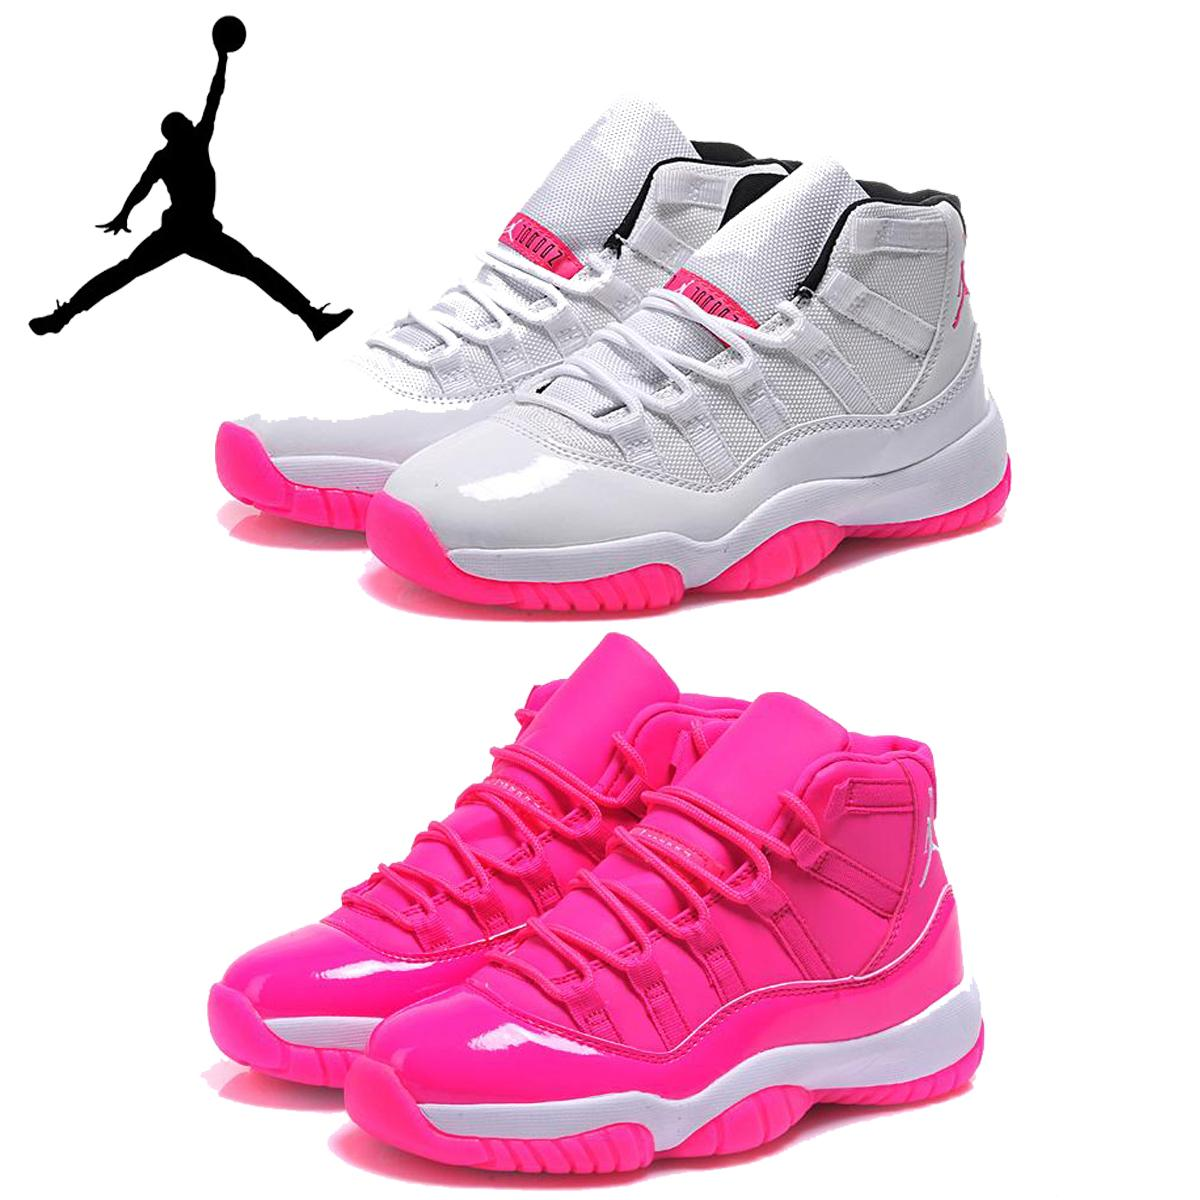 Lady Nike Air Jordan 11 Basketball Shoes Womens Retros Xi Hot Pink  Basketball Shoe Girls Sports Shoes Grey Comfortable Trainers Men Shoes  Online Online Shoe ...